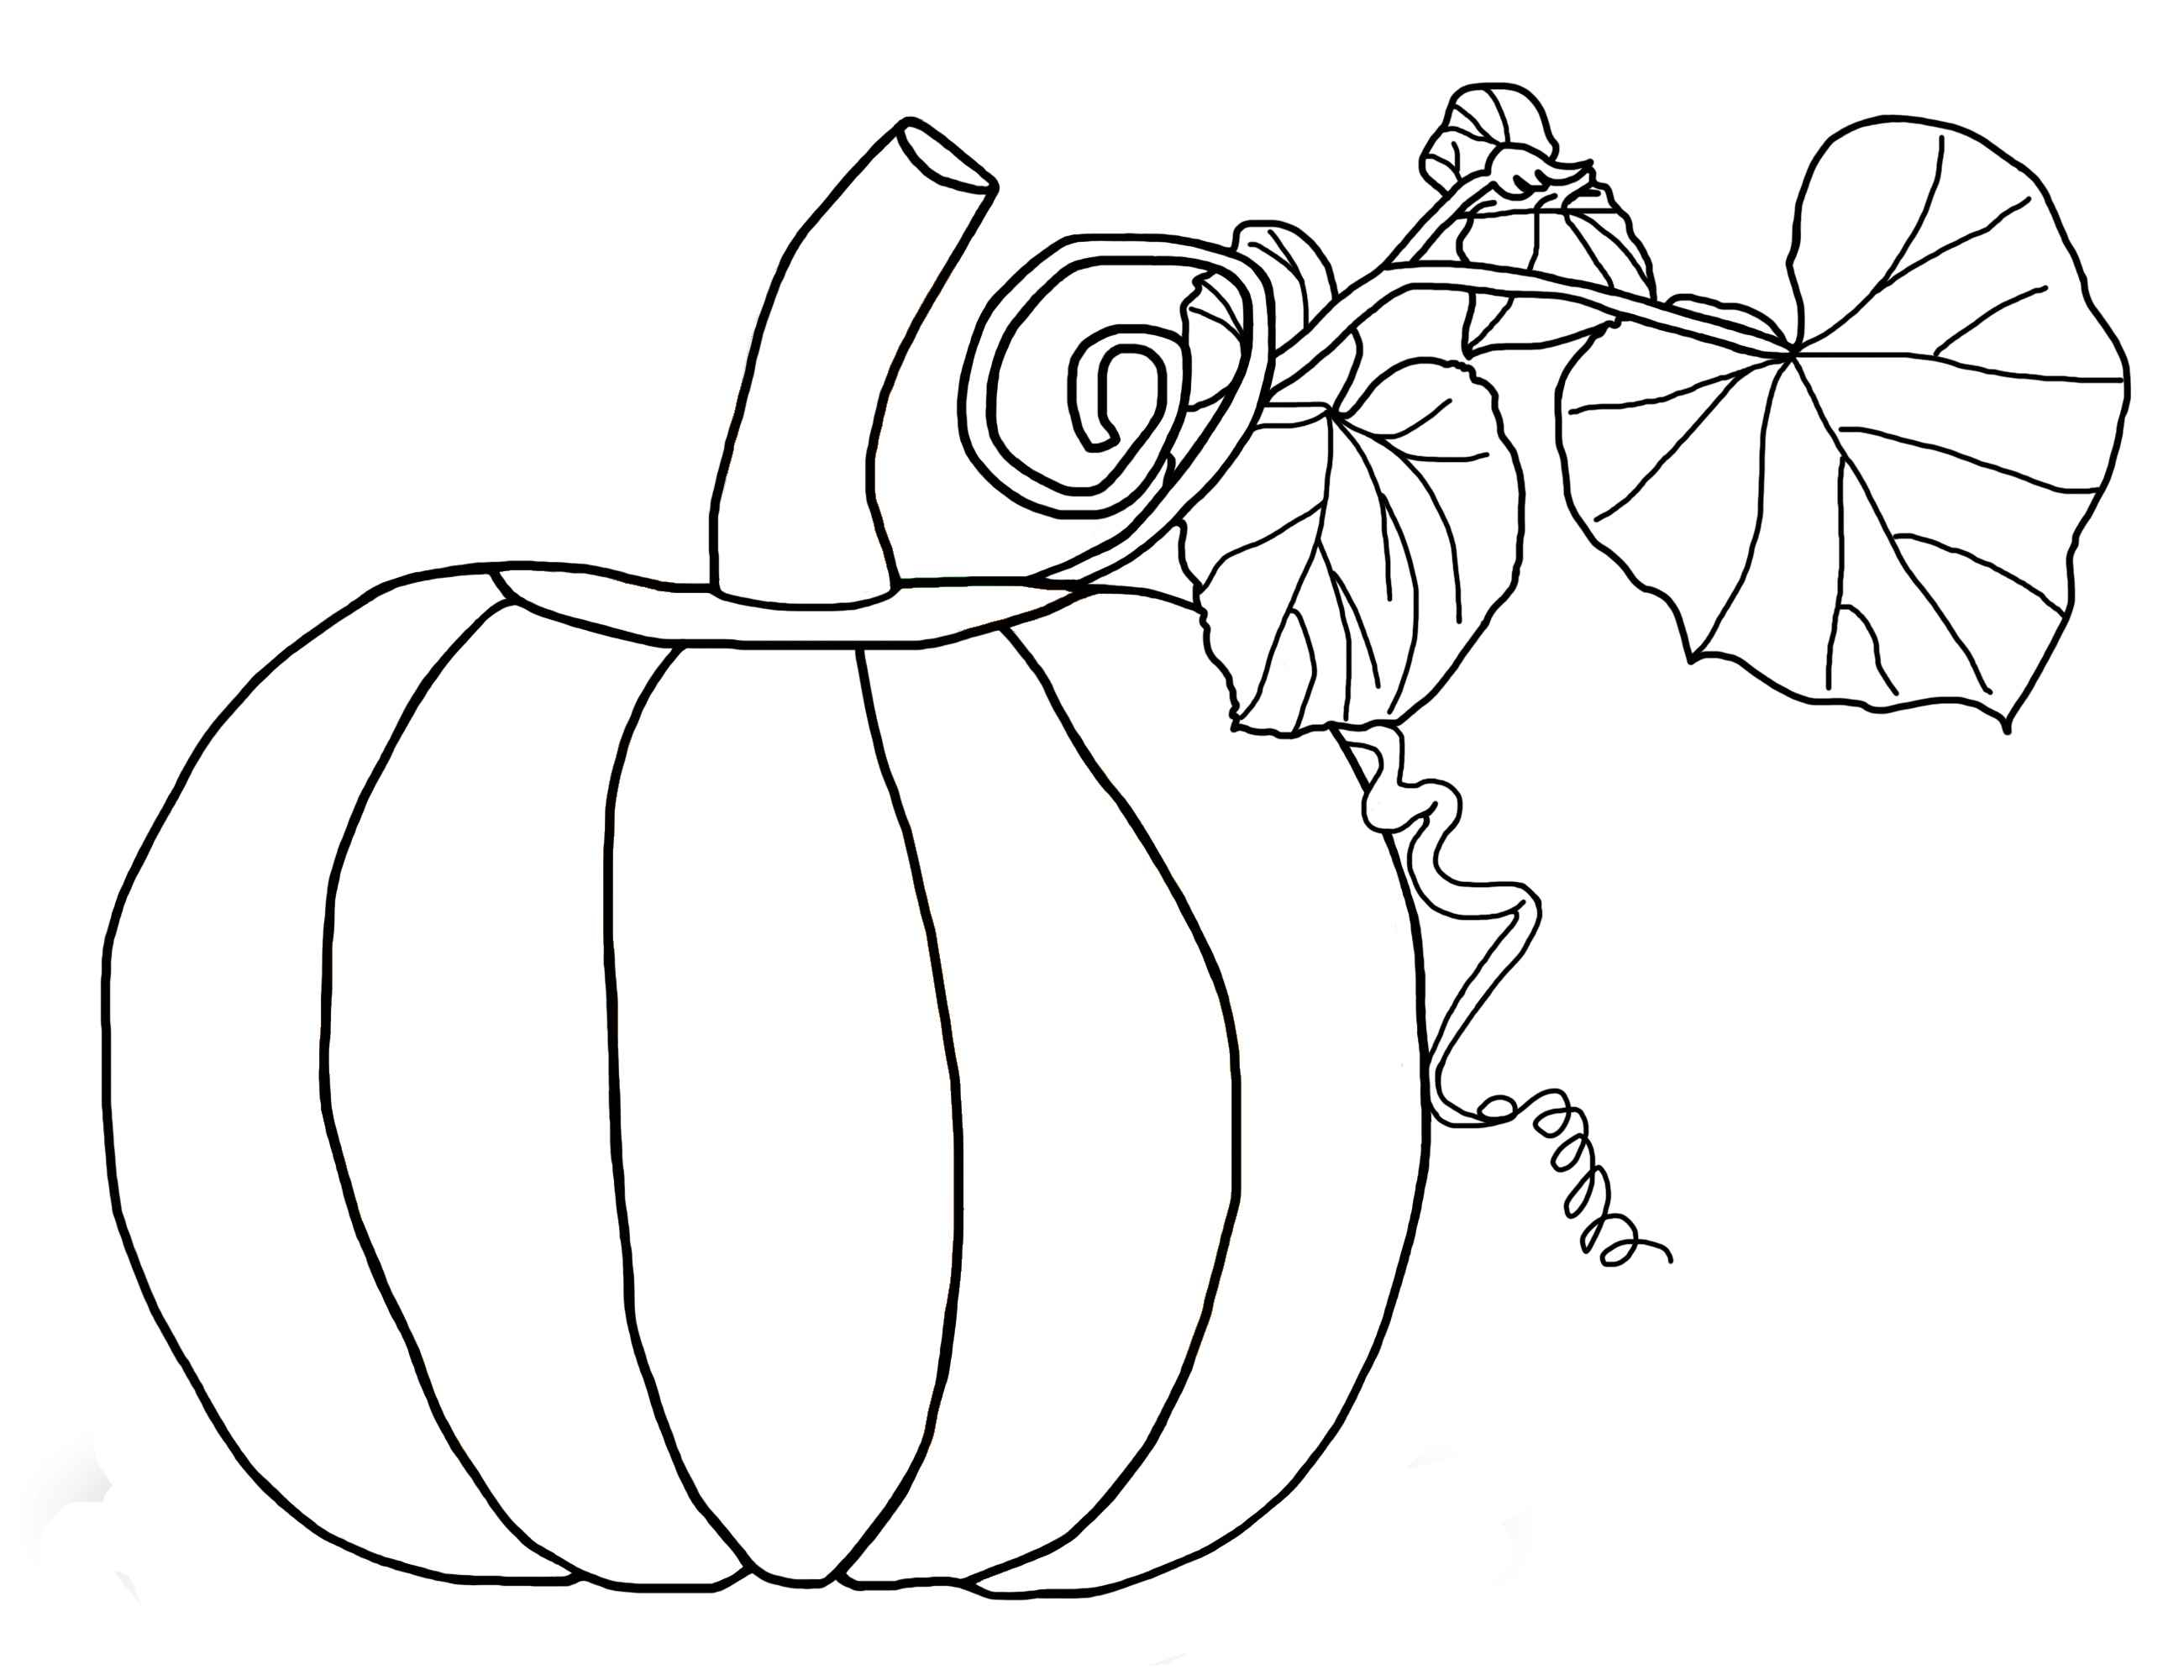 Coloring Page Of Pumpkin Free Pumpkin Coloring Pages For Kids